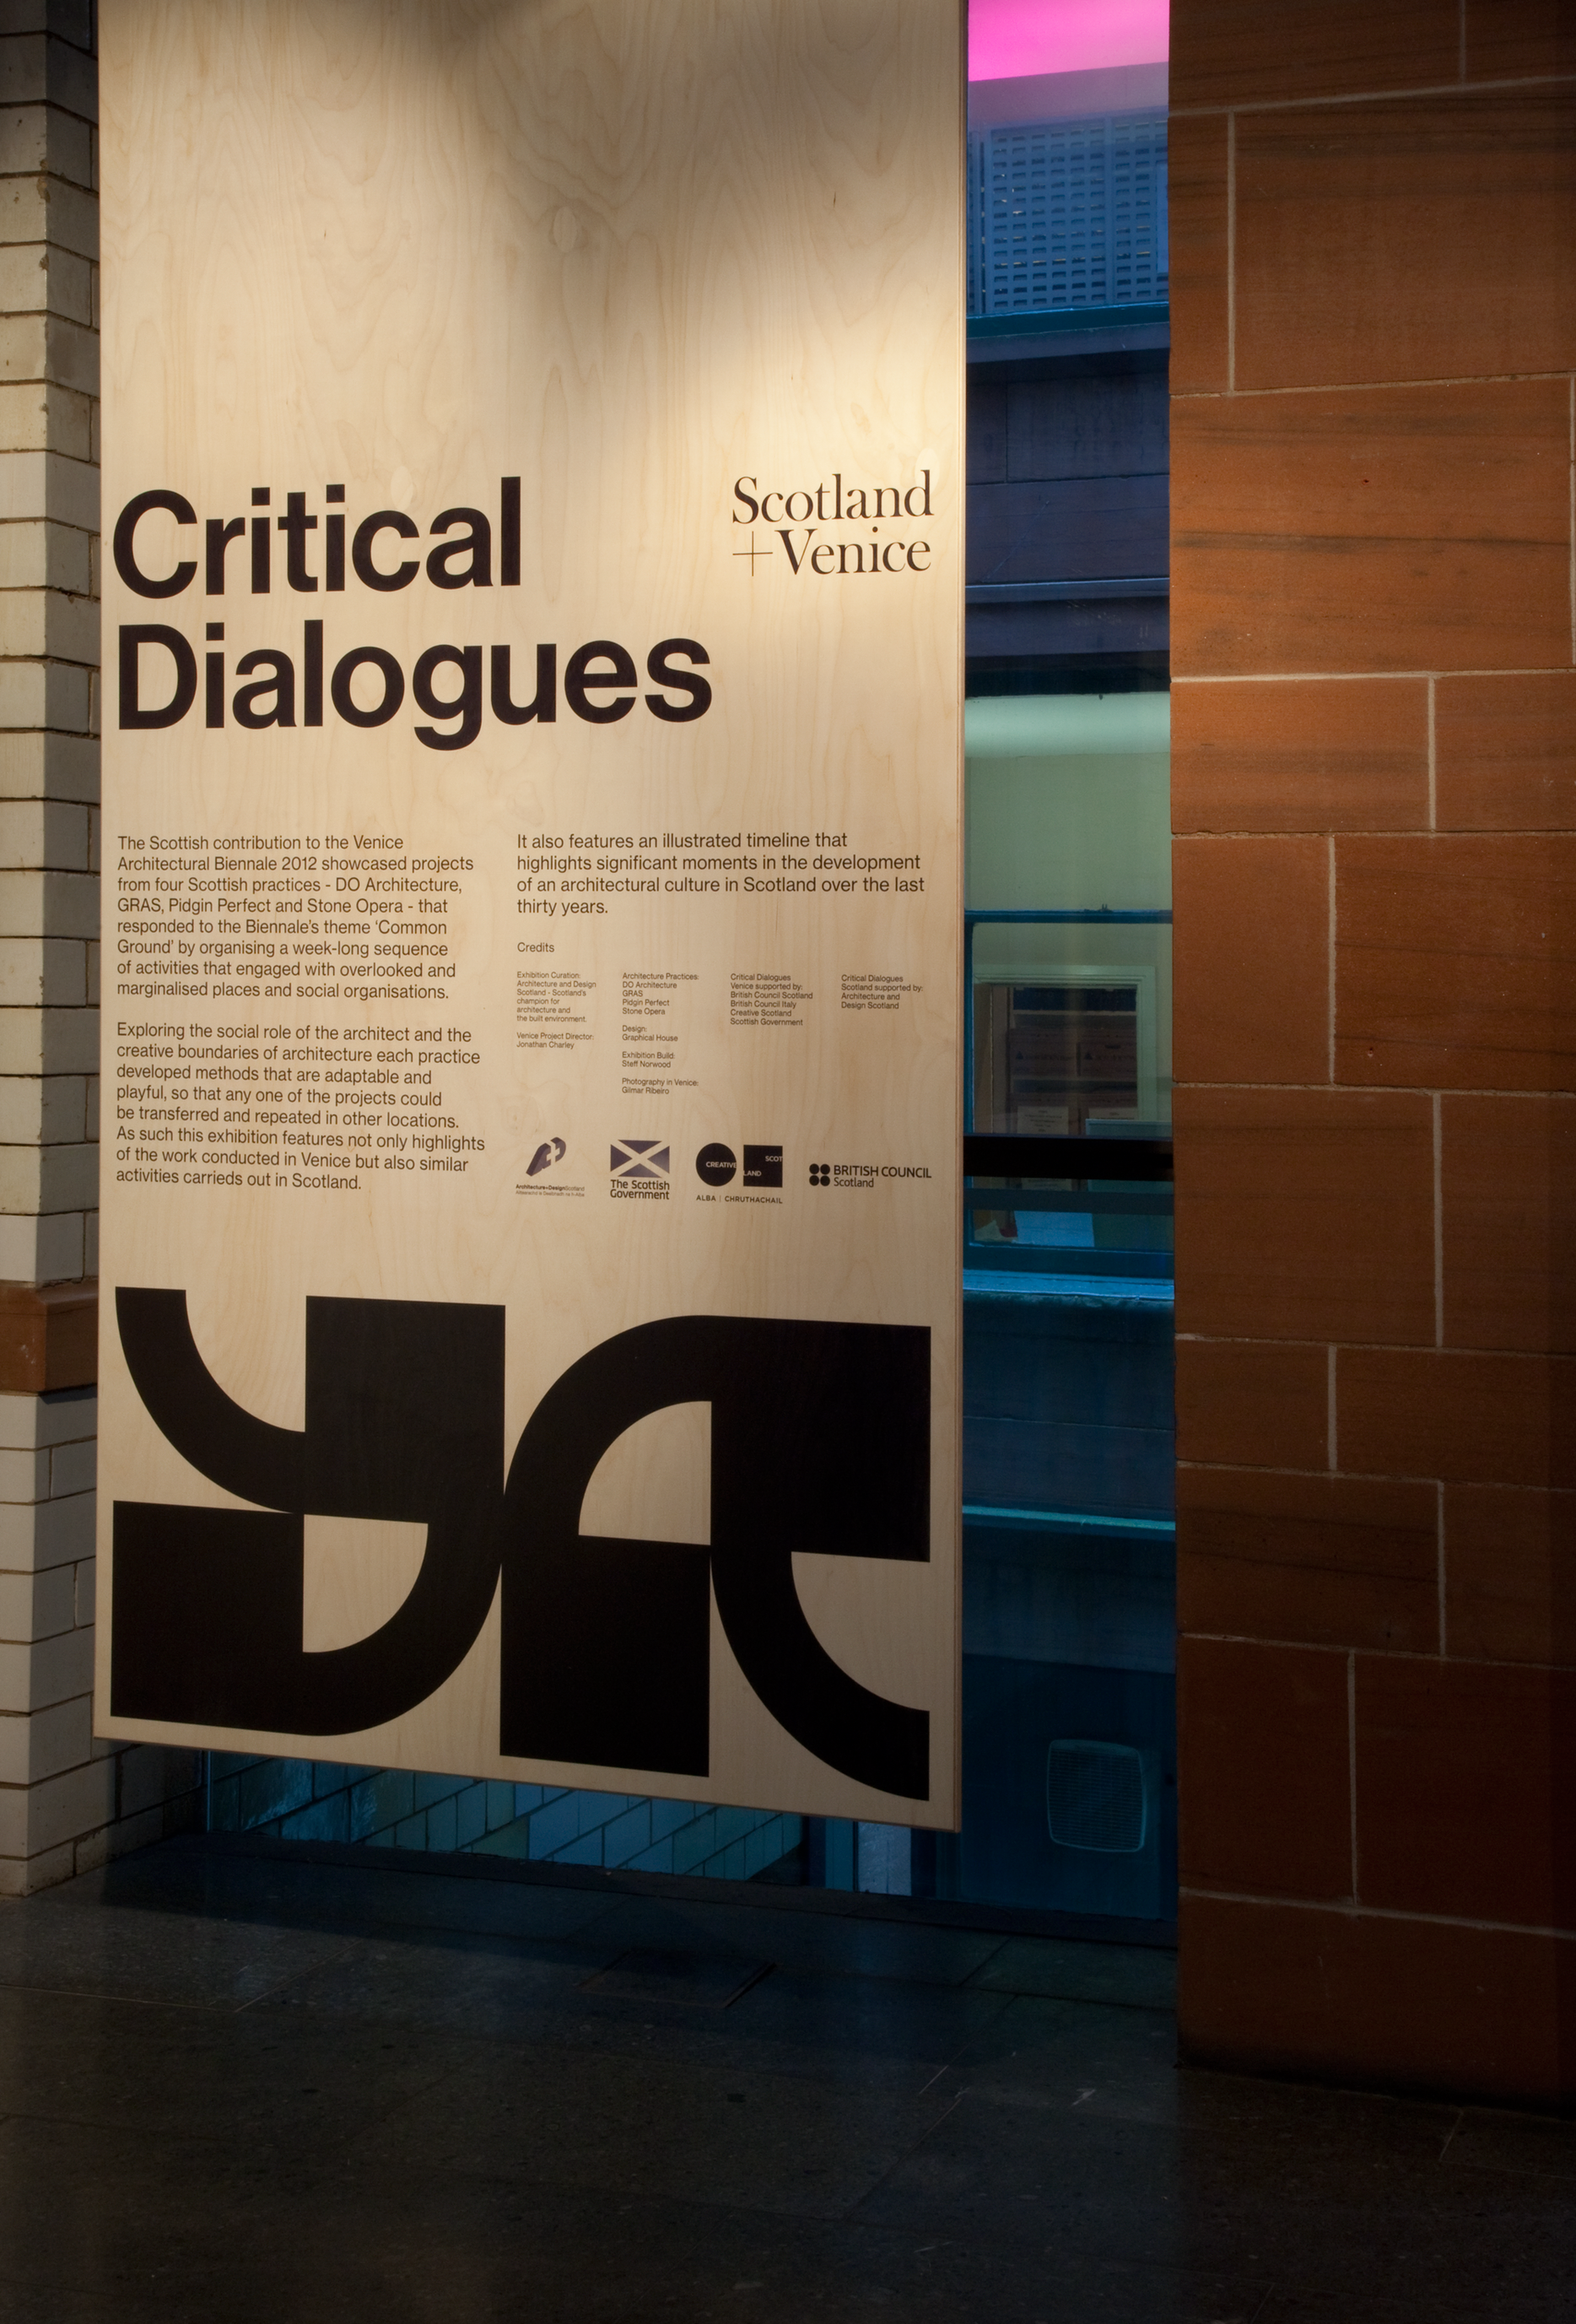 Exhibition Signage - Photo by Graphical House